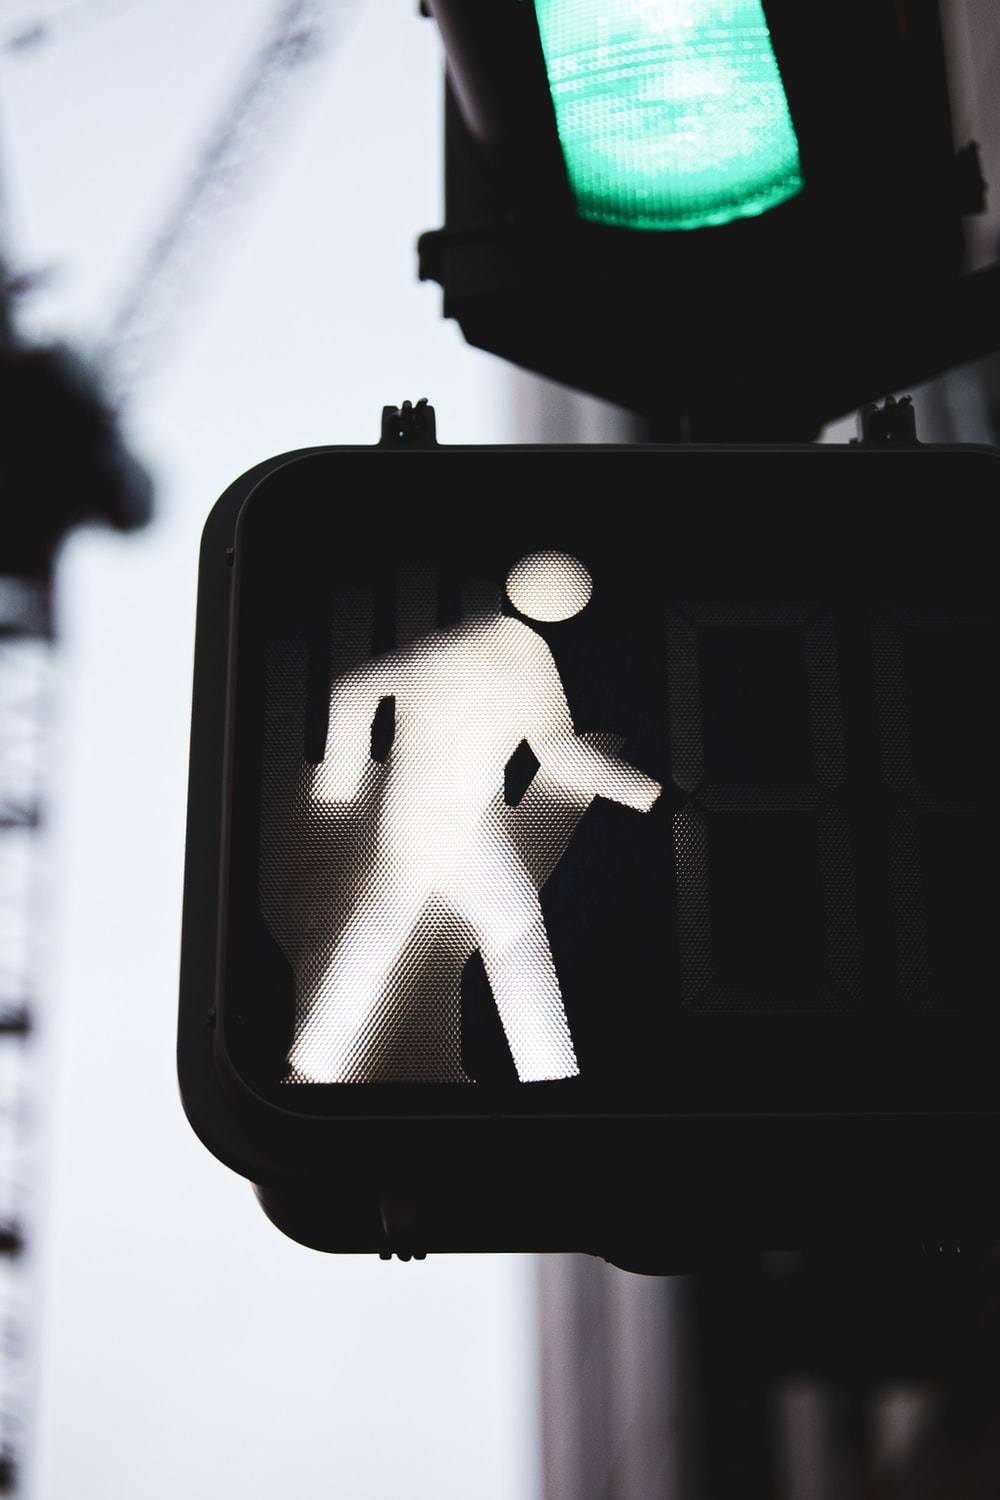 traffic light displaying walk